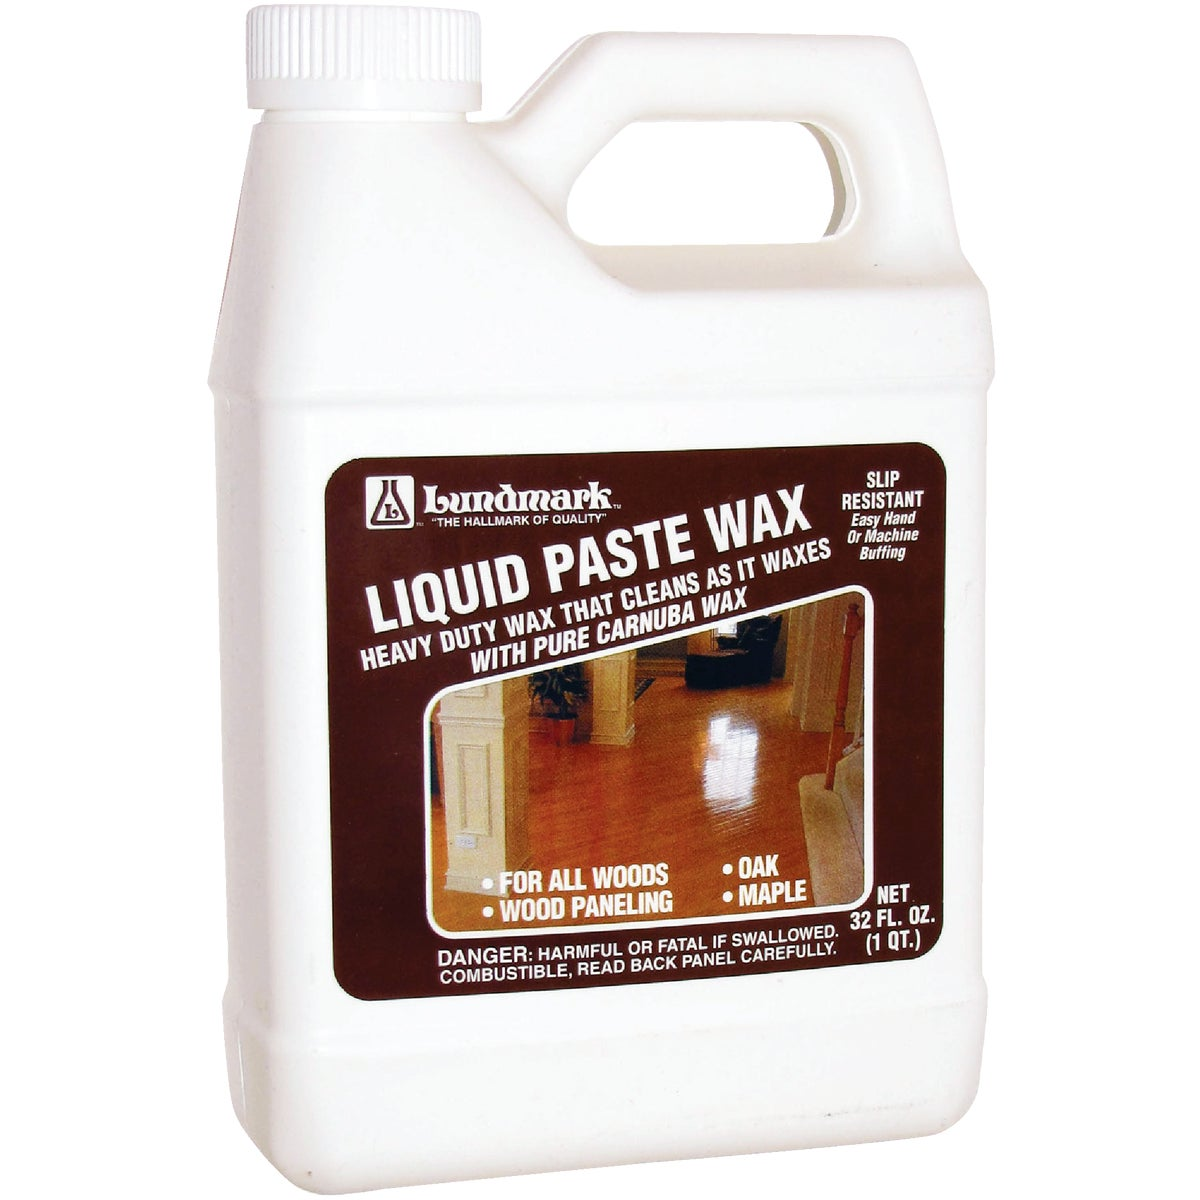 32OZ LIQUID PASTE WAX - 3208F32-6 by Lundmark Wax Co